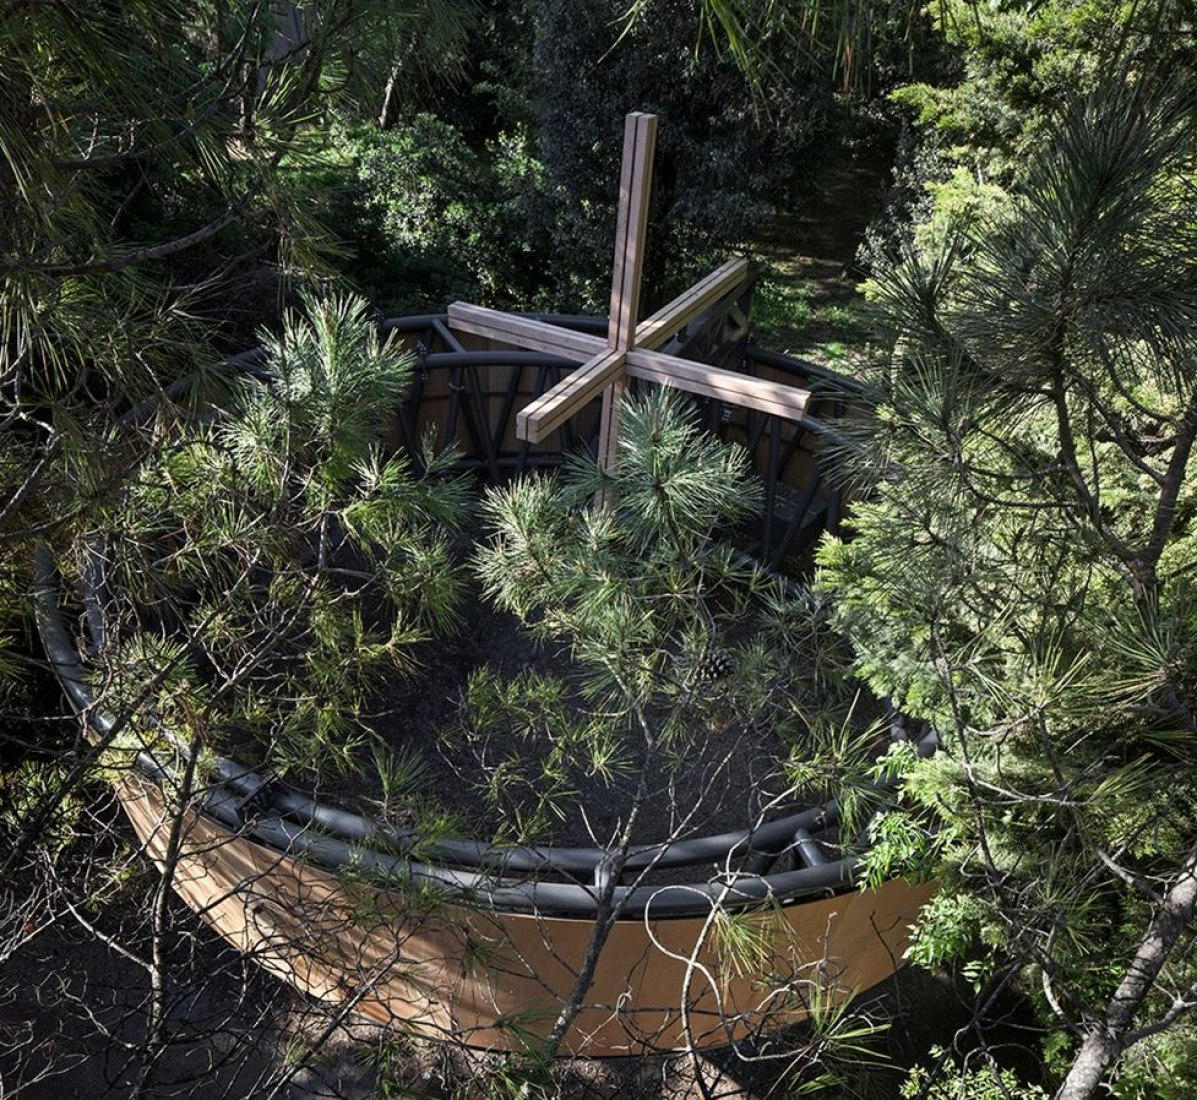 Javier Corvalán's timber Nomadic Chapel, a circle of timber, appears to unfold in the forest. Photograph by Alessandra Chemollo